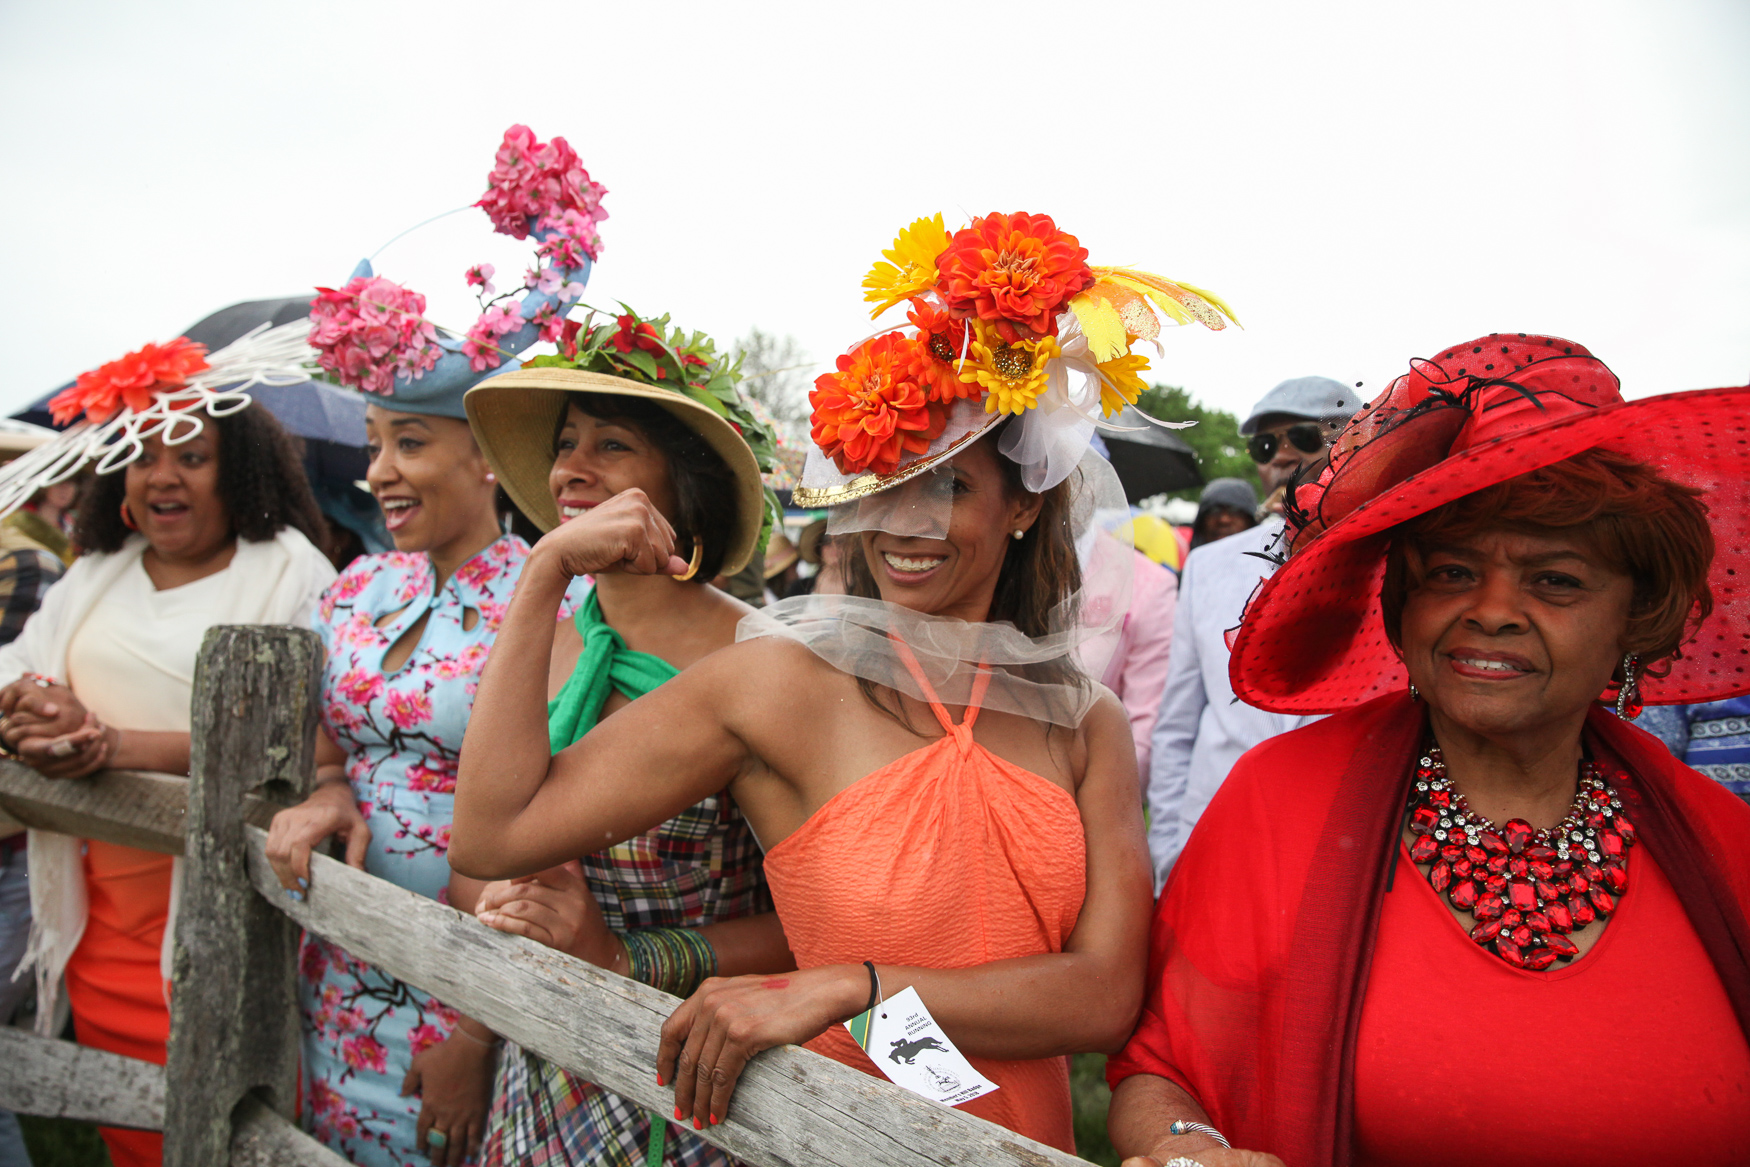 This row of hats was super bright and lovely.{ } (Amanda Andrade-Rhoades/DC Refined)